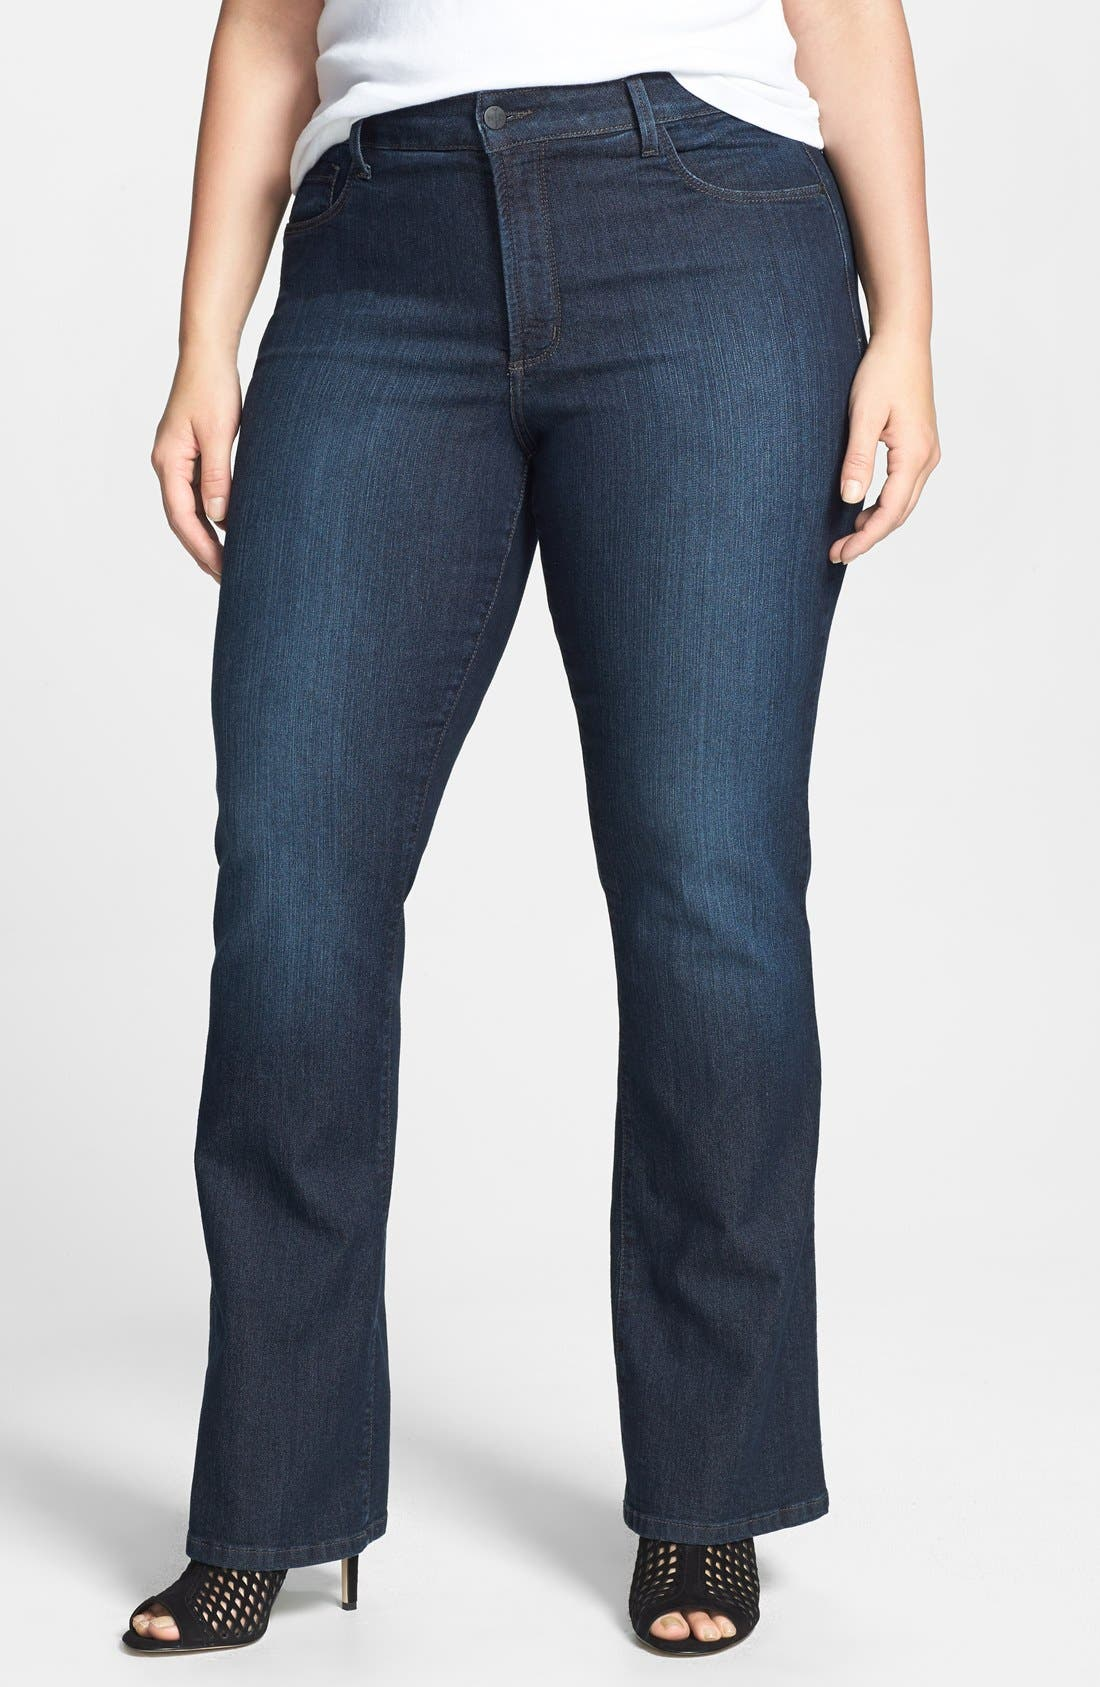 Main Image - NYDJ 'Barbara' Embellished Pocket Stretch Bootcut Jeans (Burbank) (Plus Size)